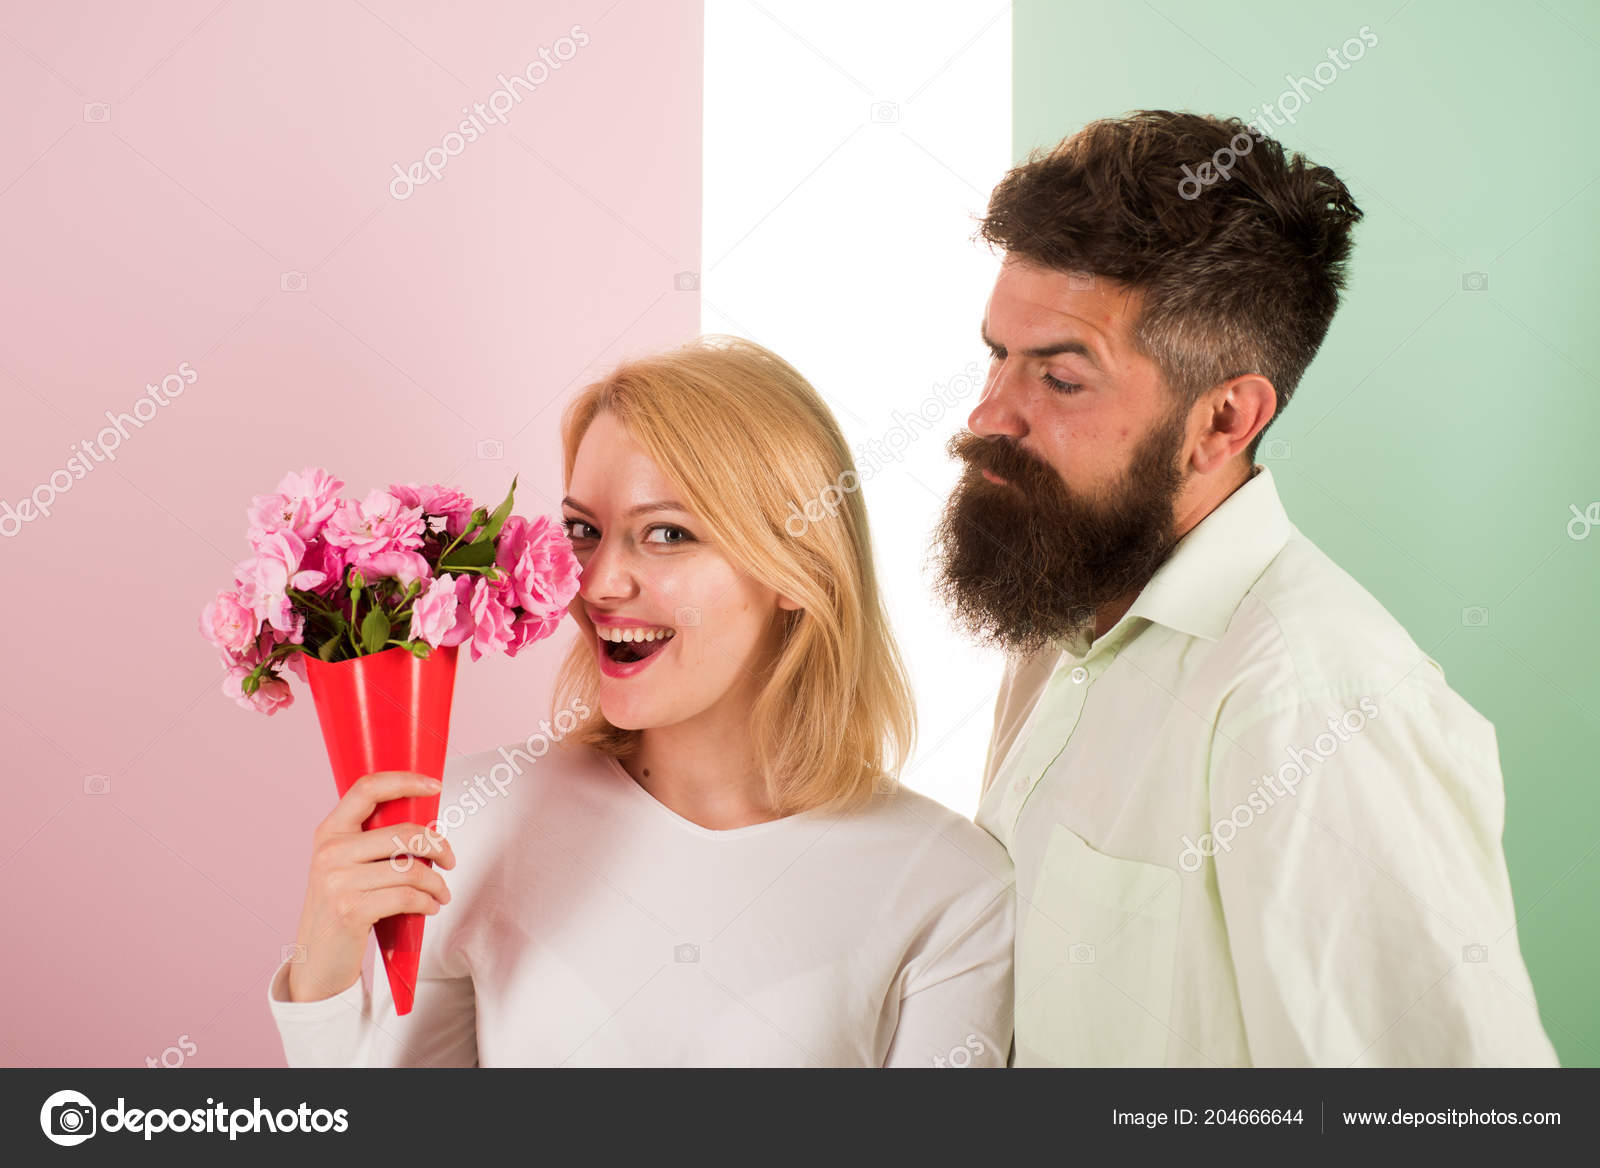 Woman Enjoy Fragrance Bouquet Flowers Man With Beard Takes Care About Girlfriend Happiness Lady